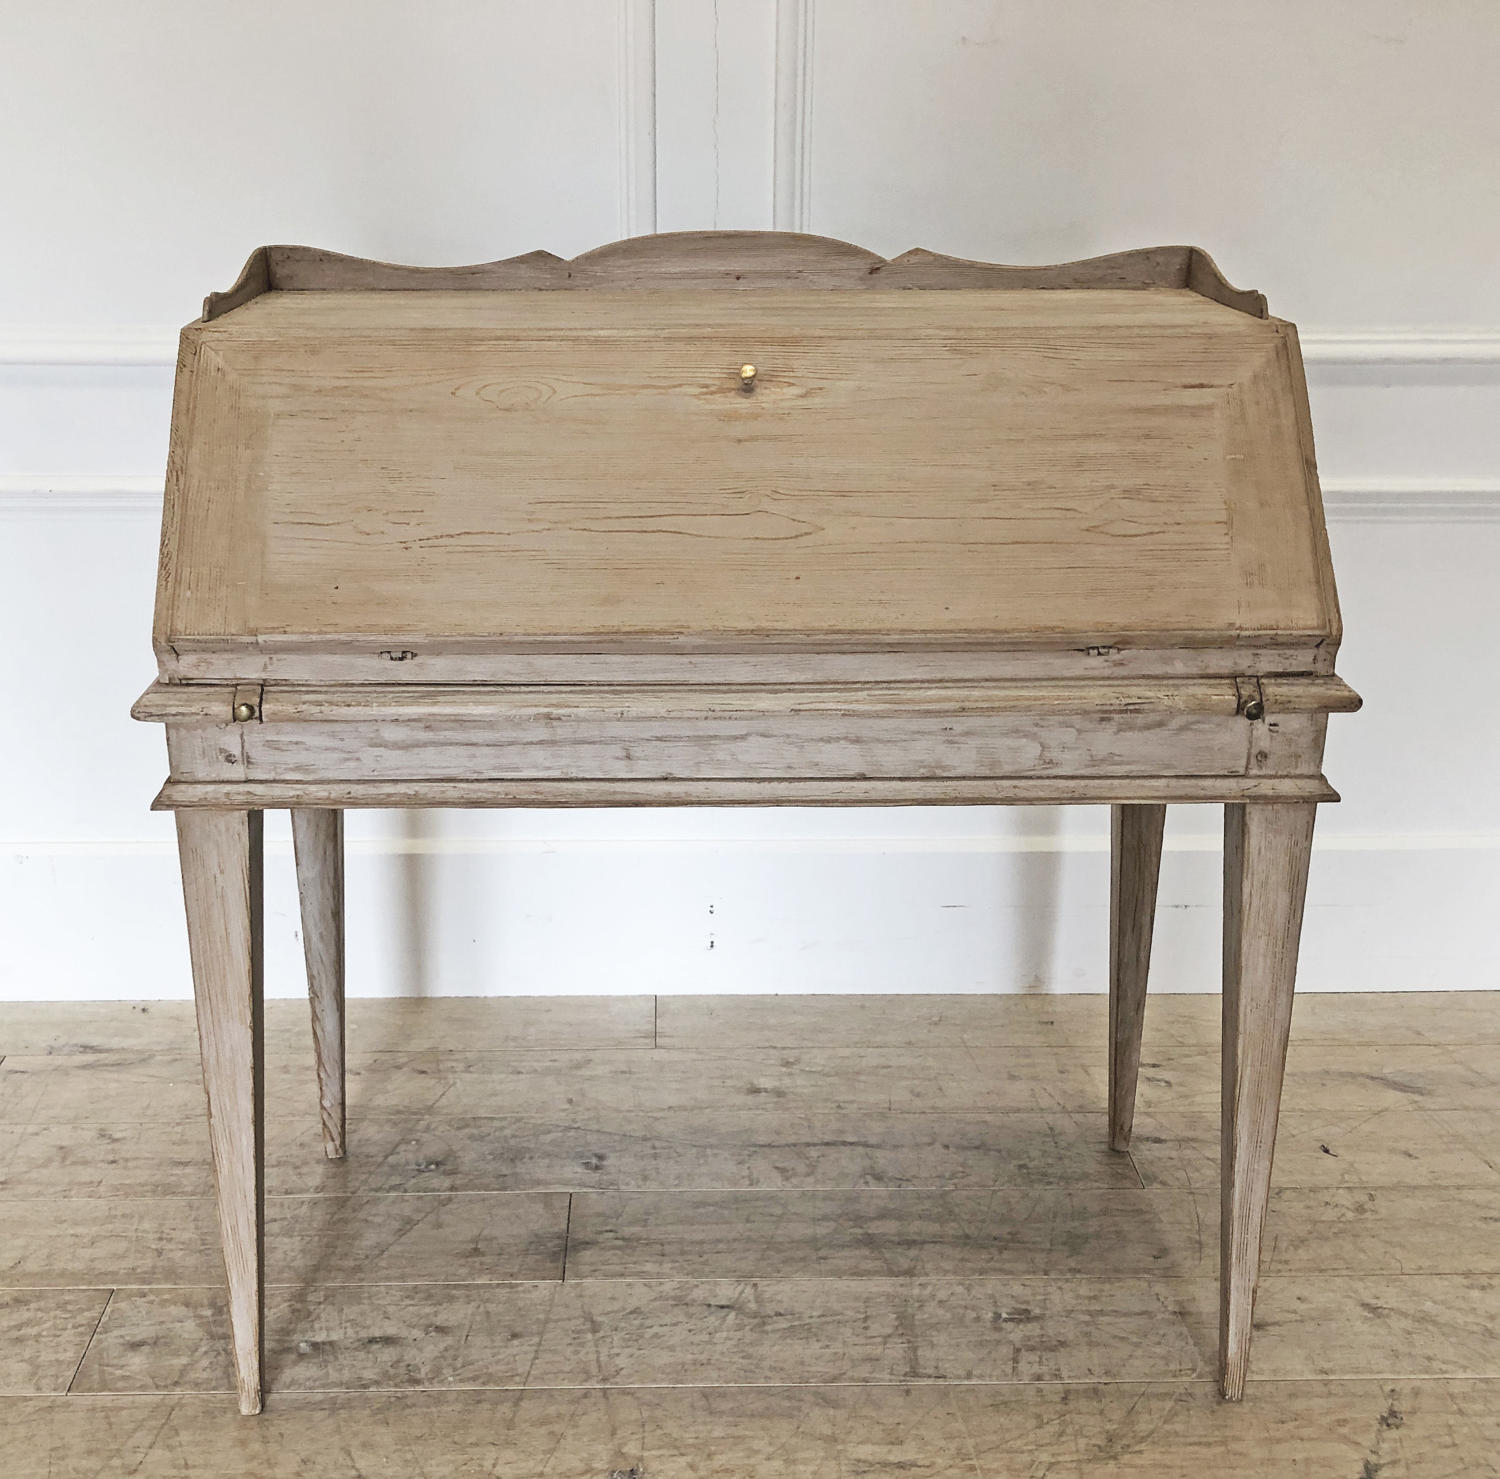 19th c French Slope-topped Desk - circa 1880